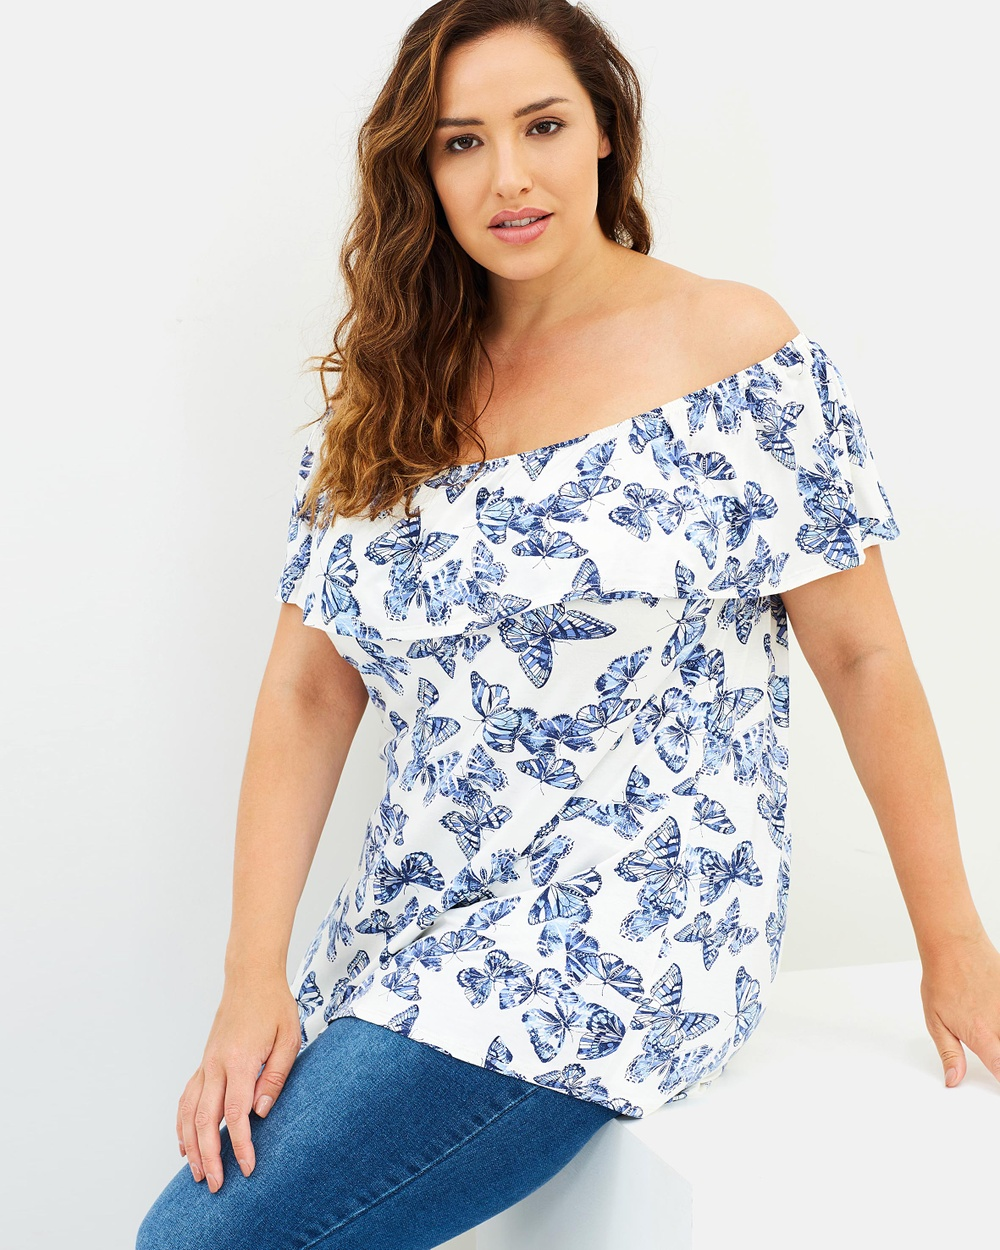 EVANS Bardot Frill Top Tops White Bardot Frill Top